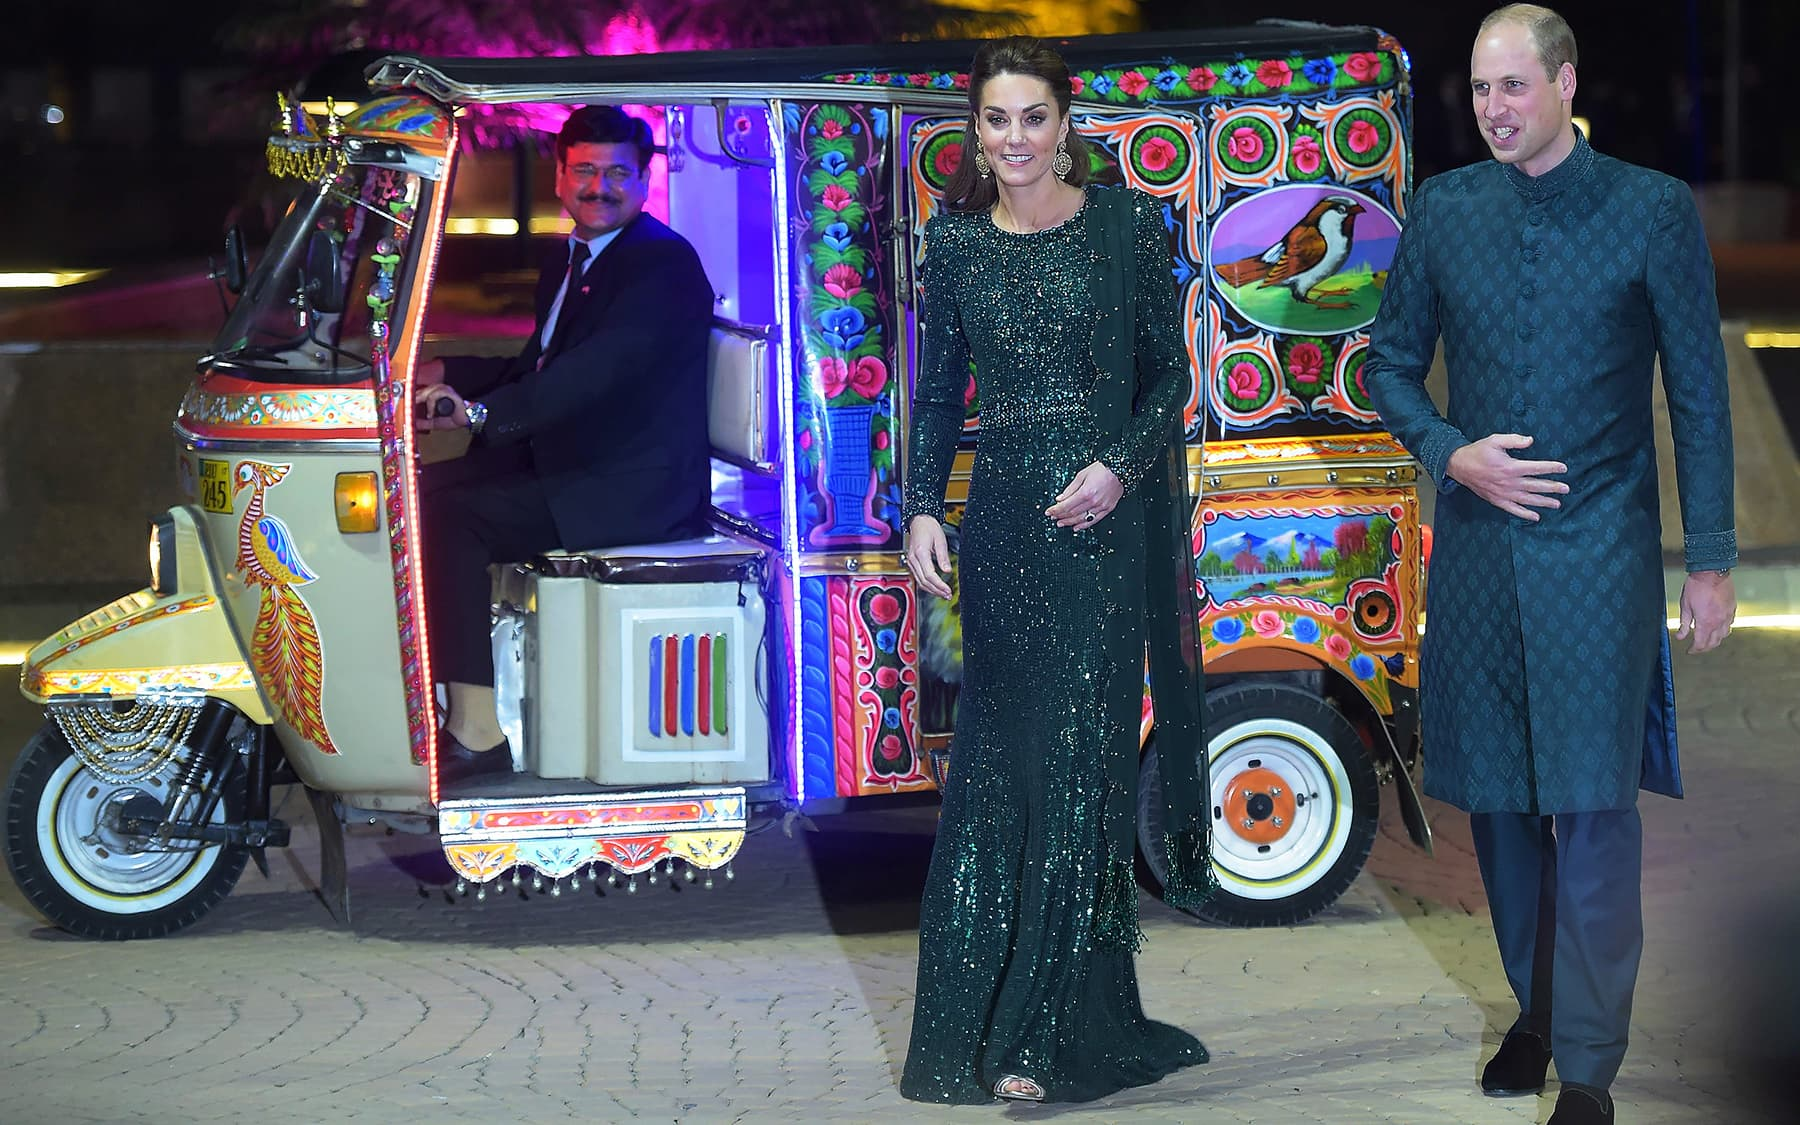 Prince William (R) and his wife Catherine arrive on a decorated auto-rickshaw to attend a reception in Islamabad. — AFP